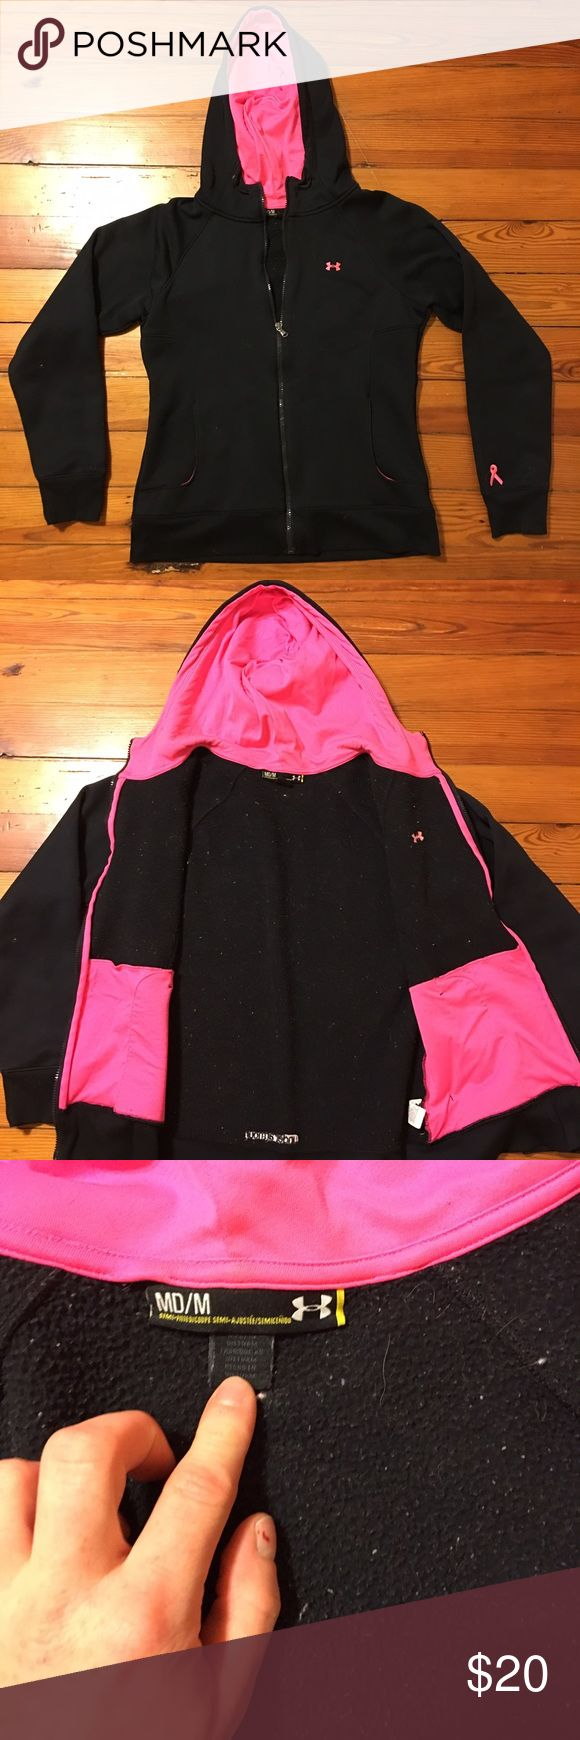 Under Armour Lightweight Jacket💞 Very cute limited addition breast cancer awareness Under Armour jacket💞 Worn a few times but in VERY good condition. The material is warm and water resilient💙 Under Armour Jackets & Coats Puffers